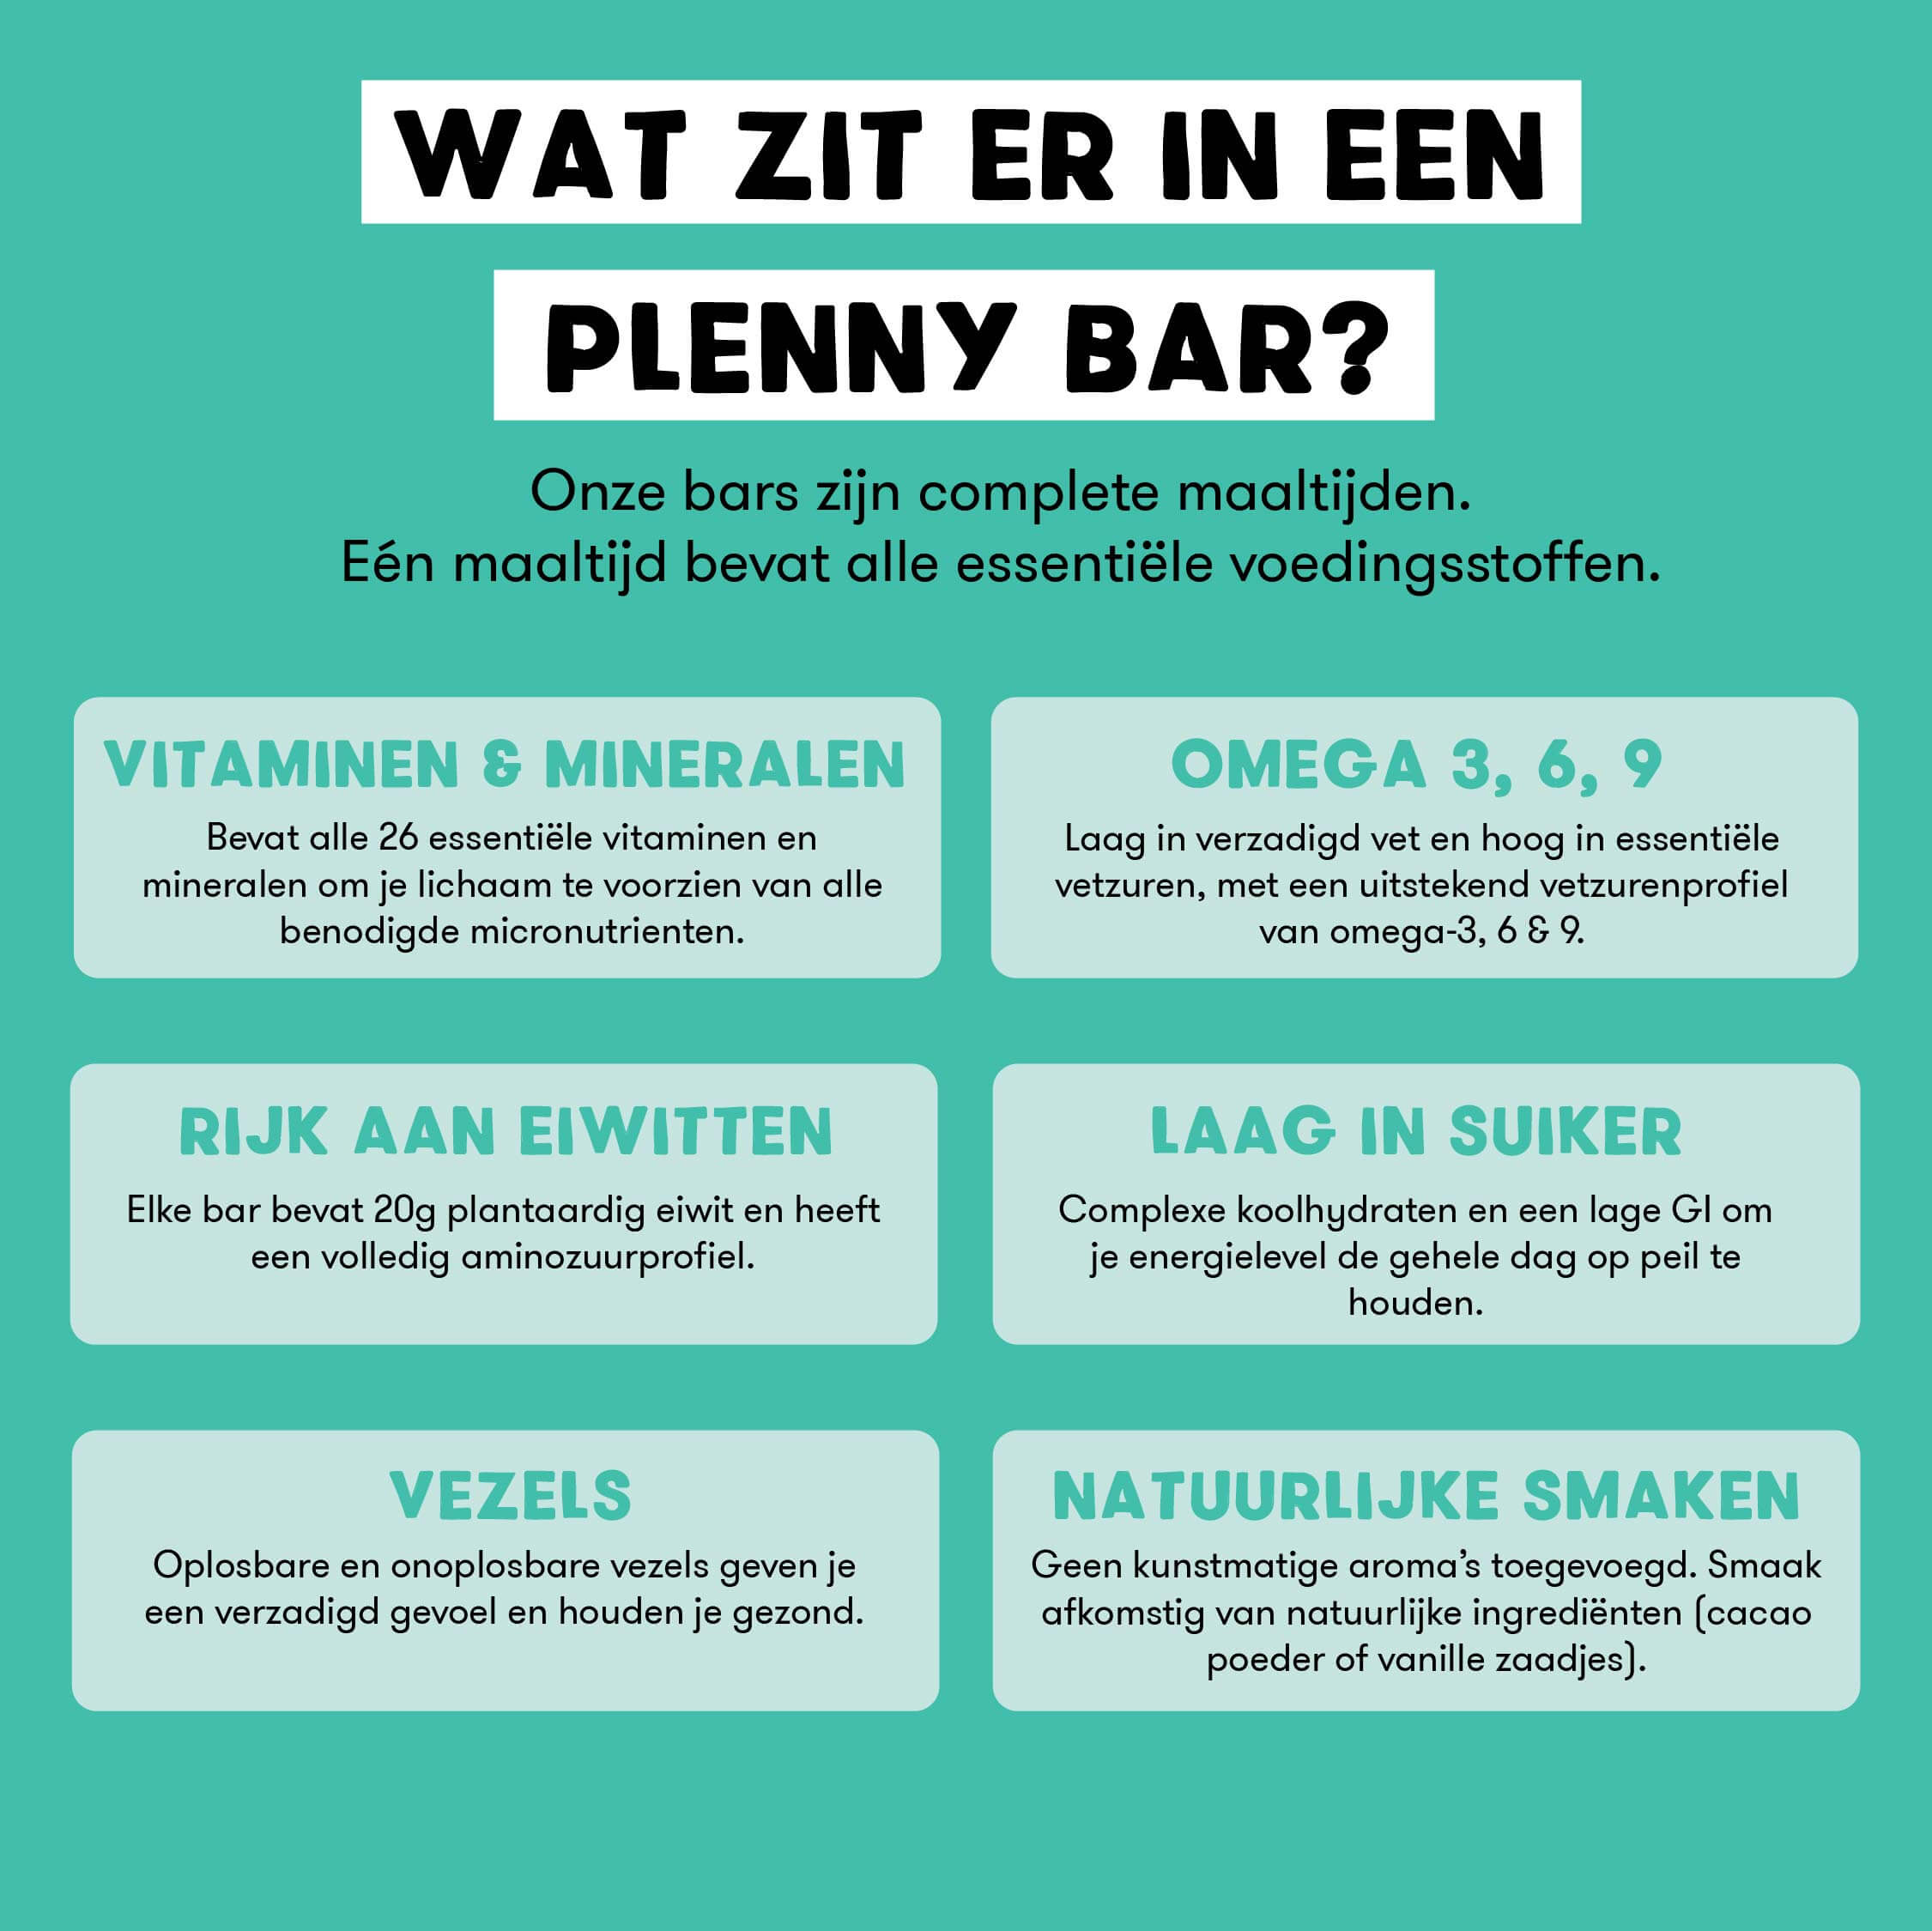 Plenny Bar v2.0